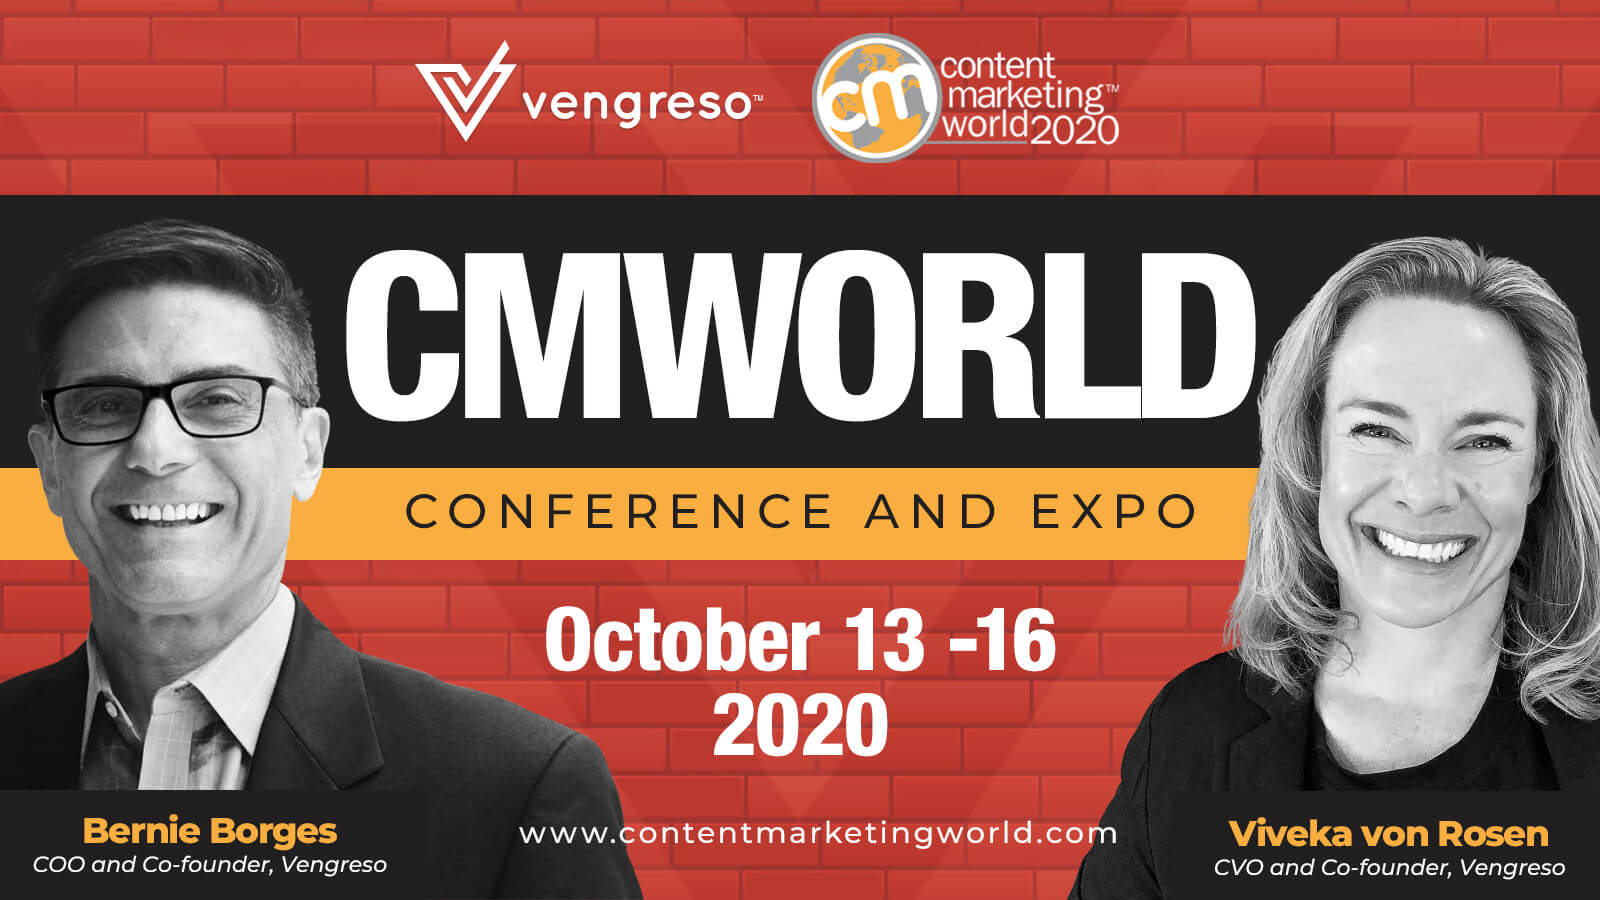 Join Viveka Von Rosen and Bernie Borges at Content Marketing World 2020